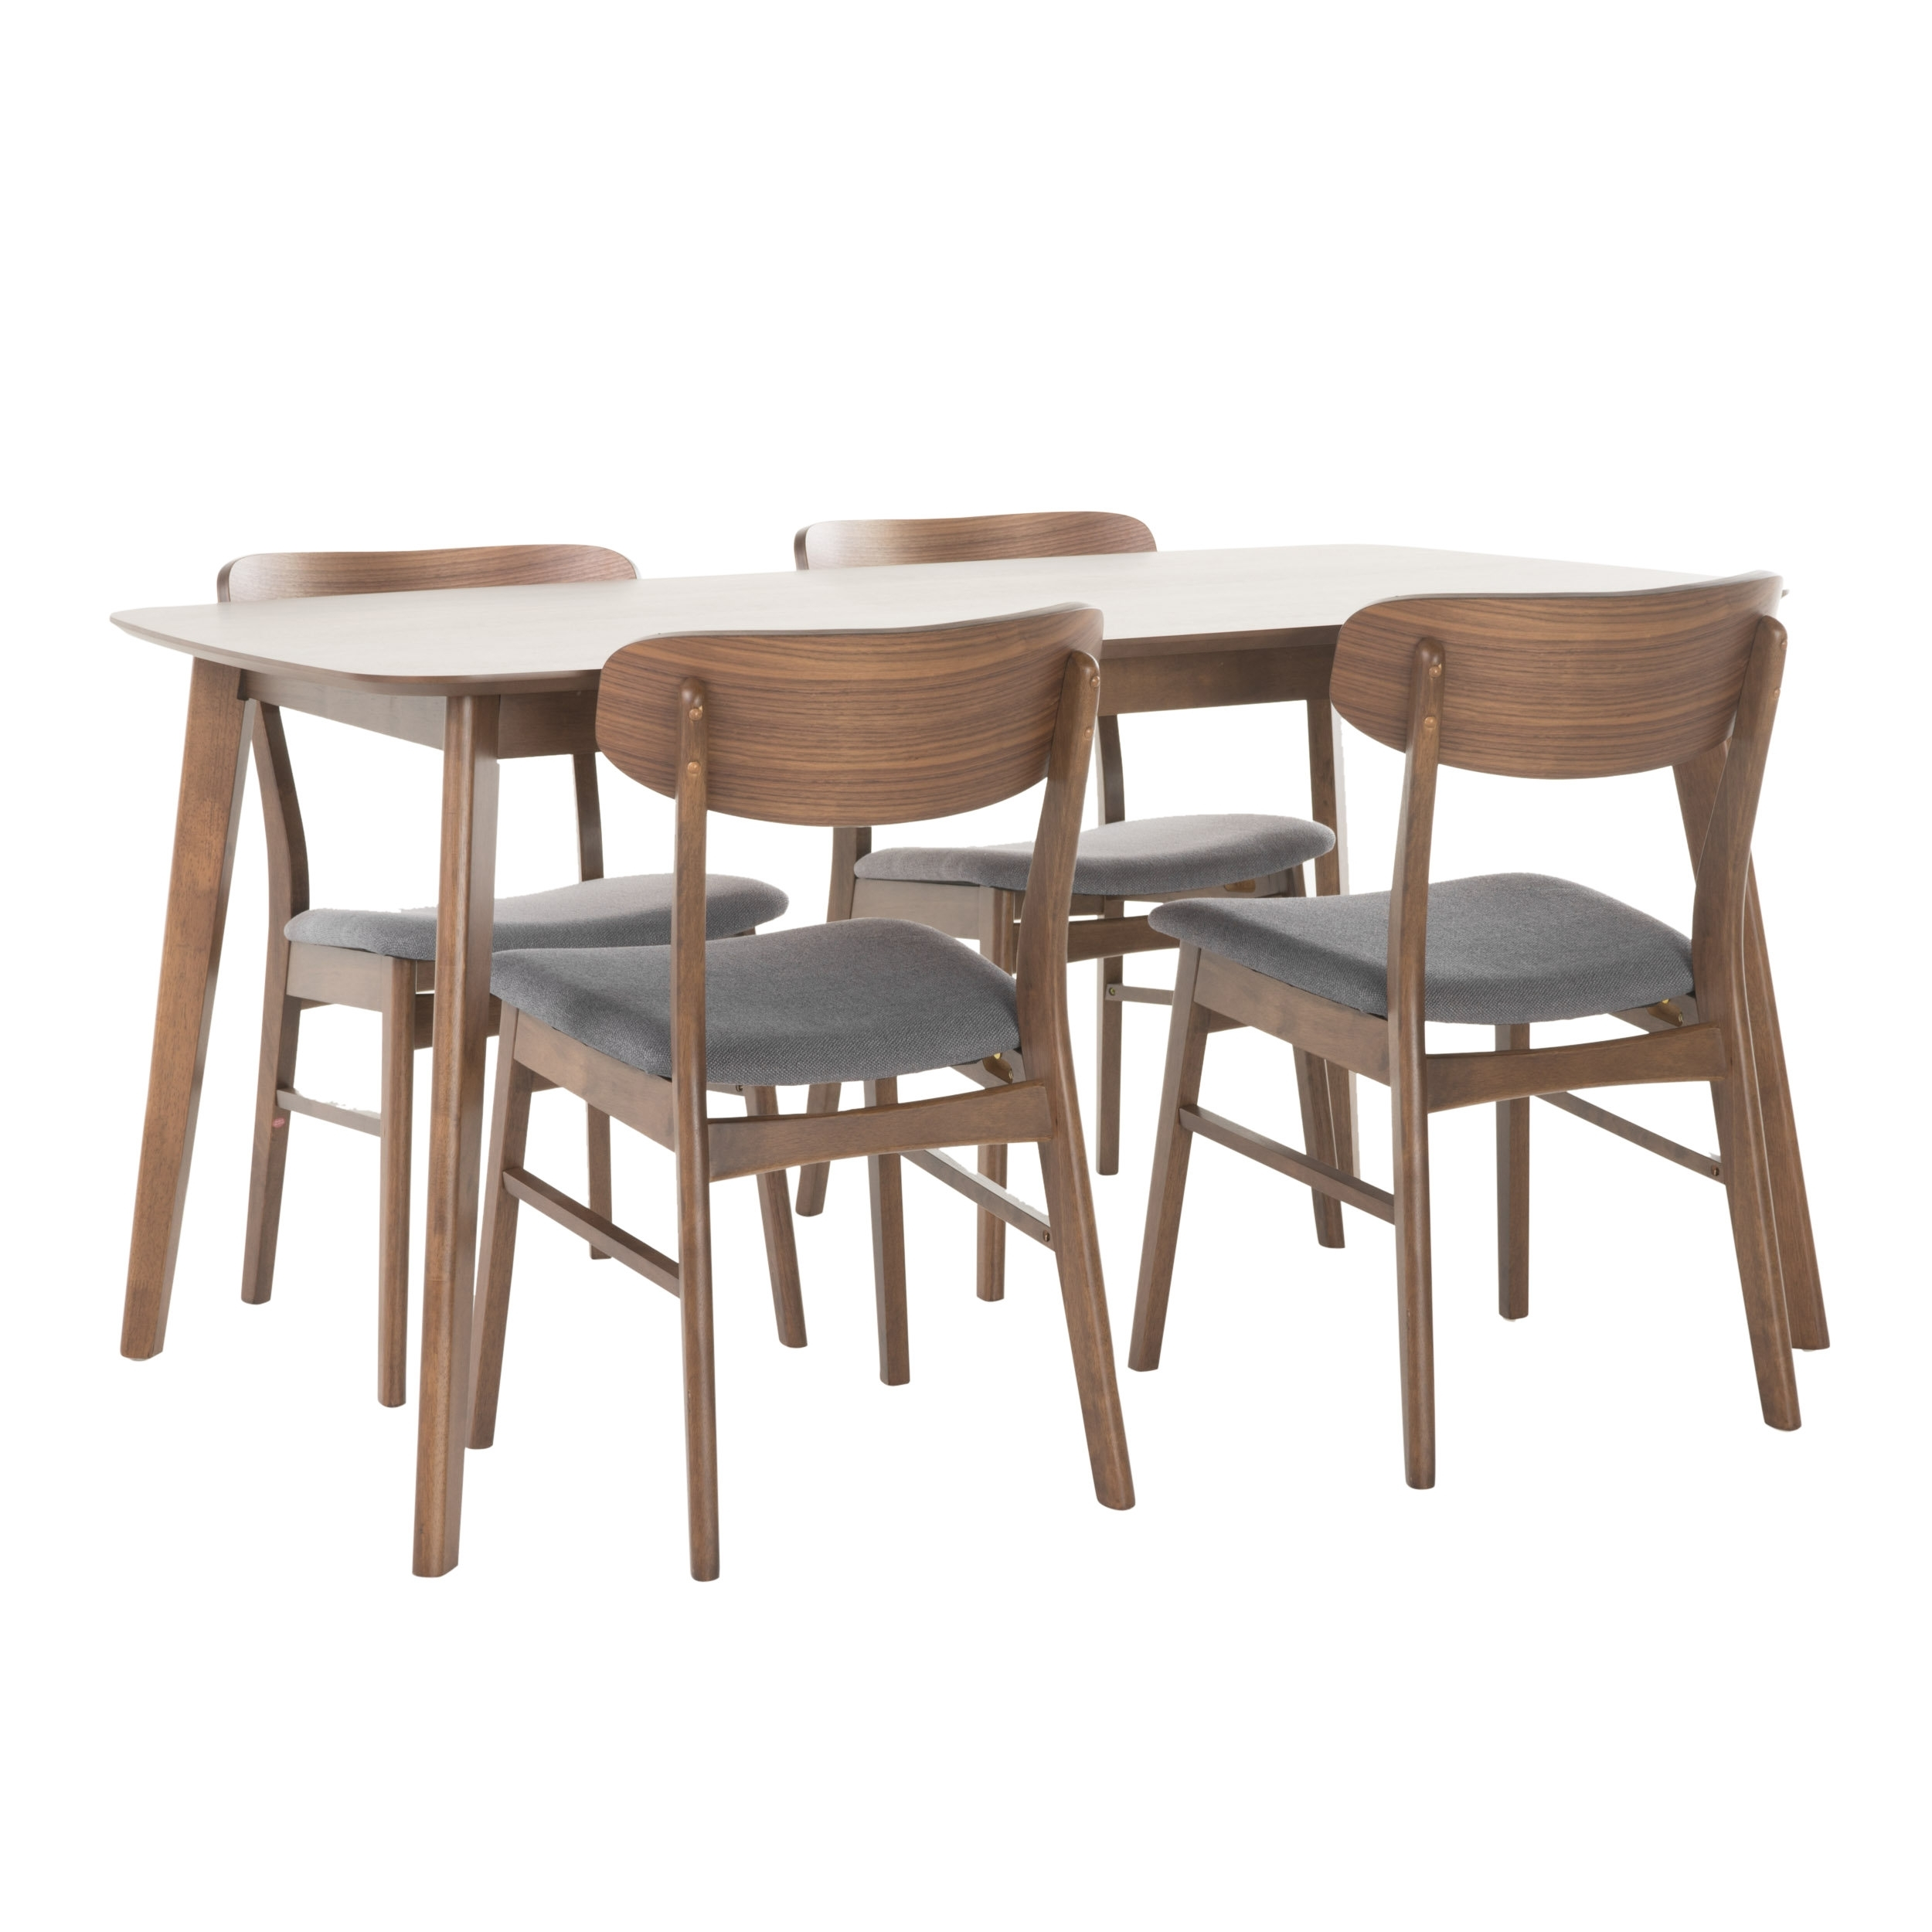 Brayden Studio Feldman 5 Piece Dining Set & Reviews | Wayfair Intended For Newest Chandler 7 Piece Extension Dining Sets With Wood Side Chairs (Image 3 of 20)